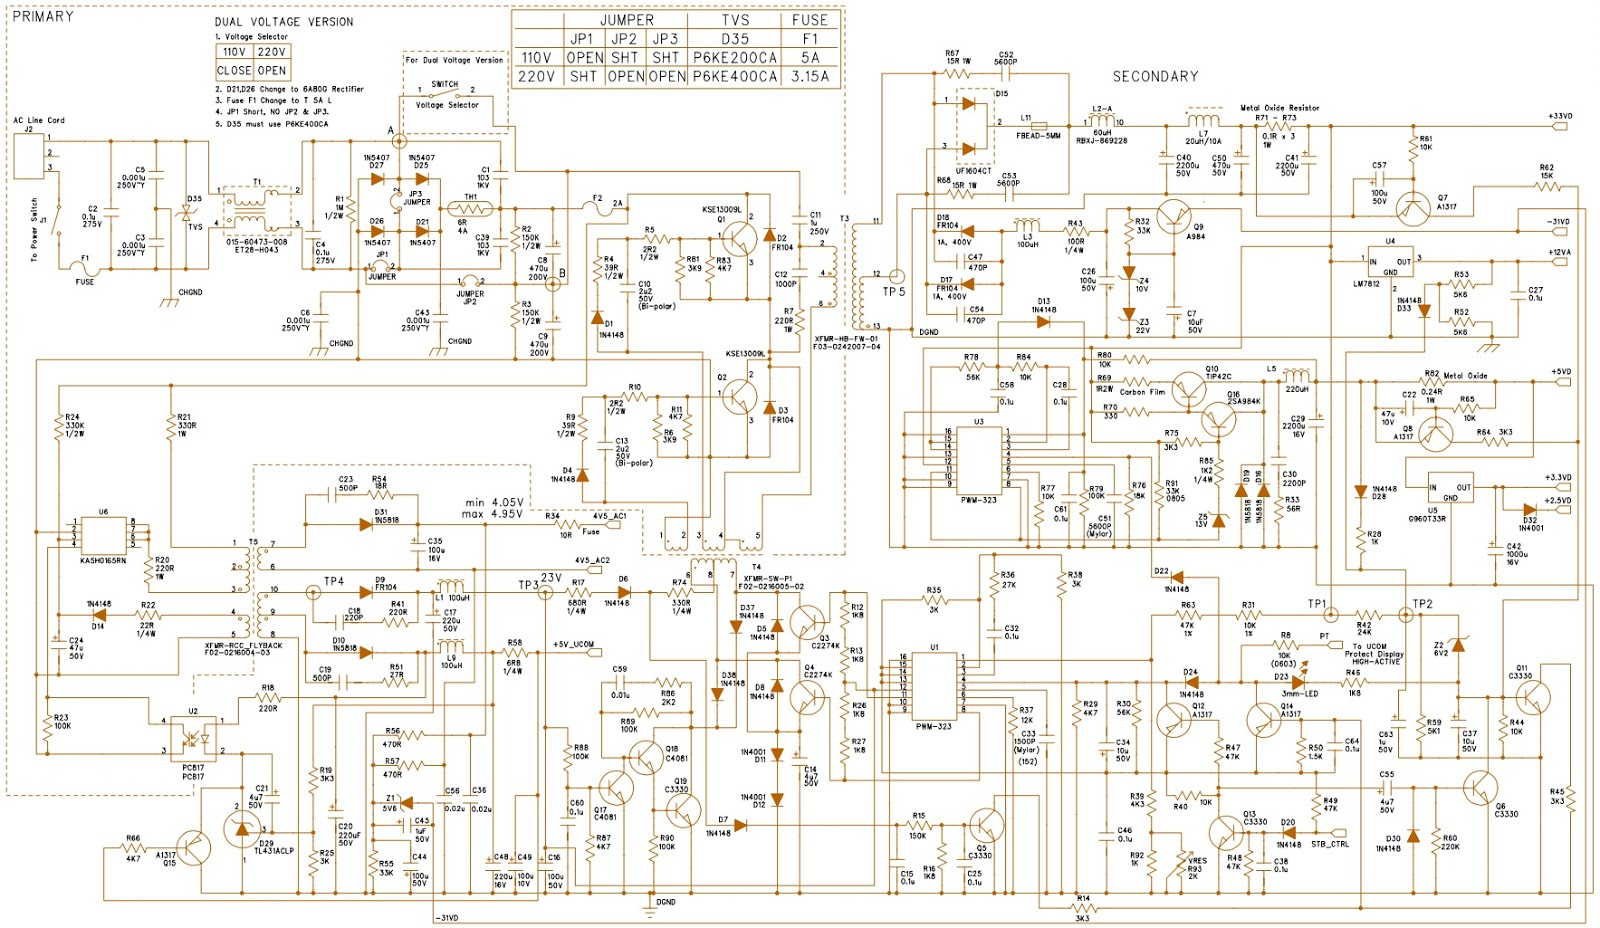 akira hts 38dvd hts circuit diagram home theater system rh schematicscom blogspot com circuit diagram of home theater system circuit diagram of intex home theater